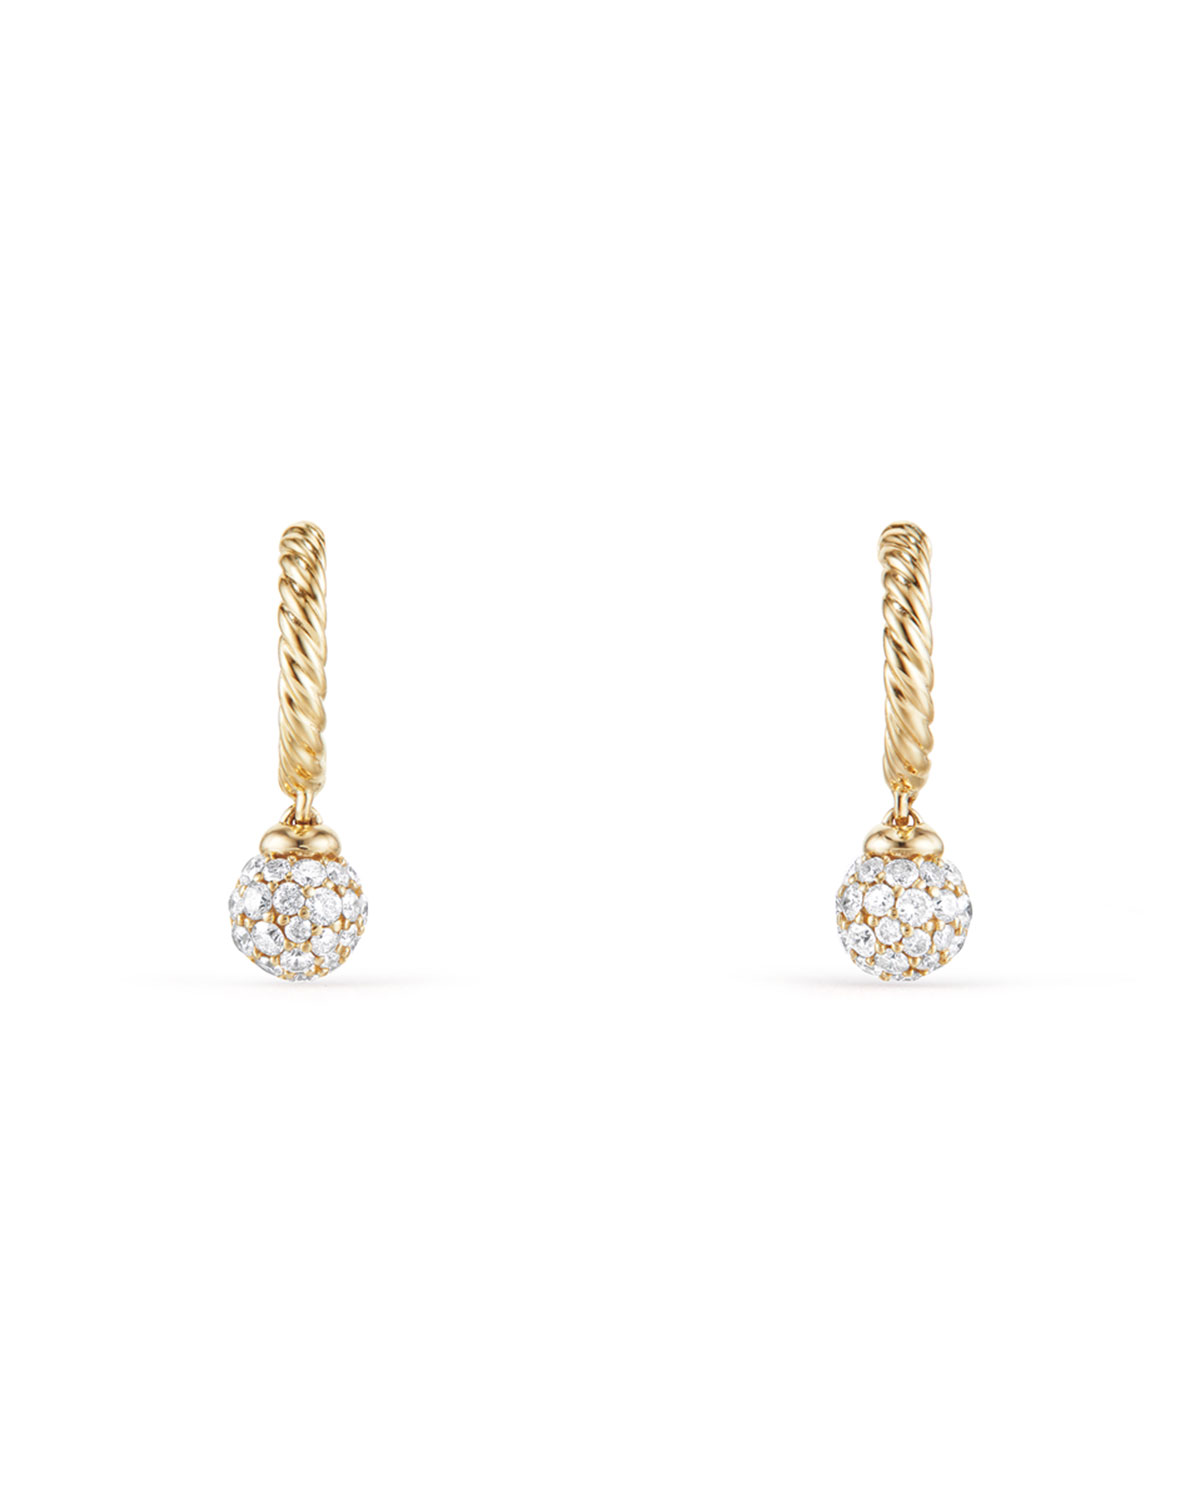 Solari Pave Diamond Ball Drop Hoop Earrings